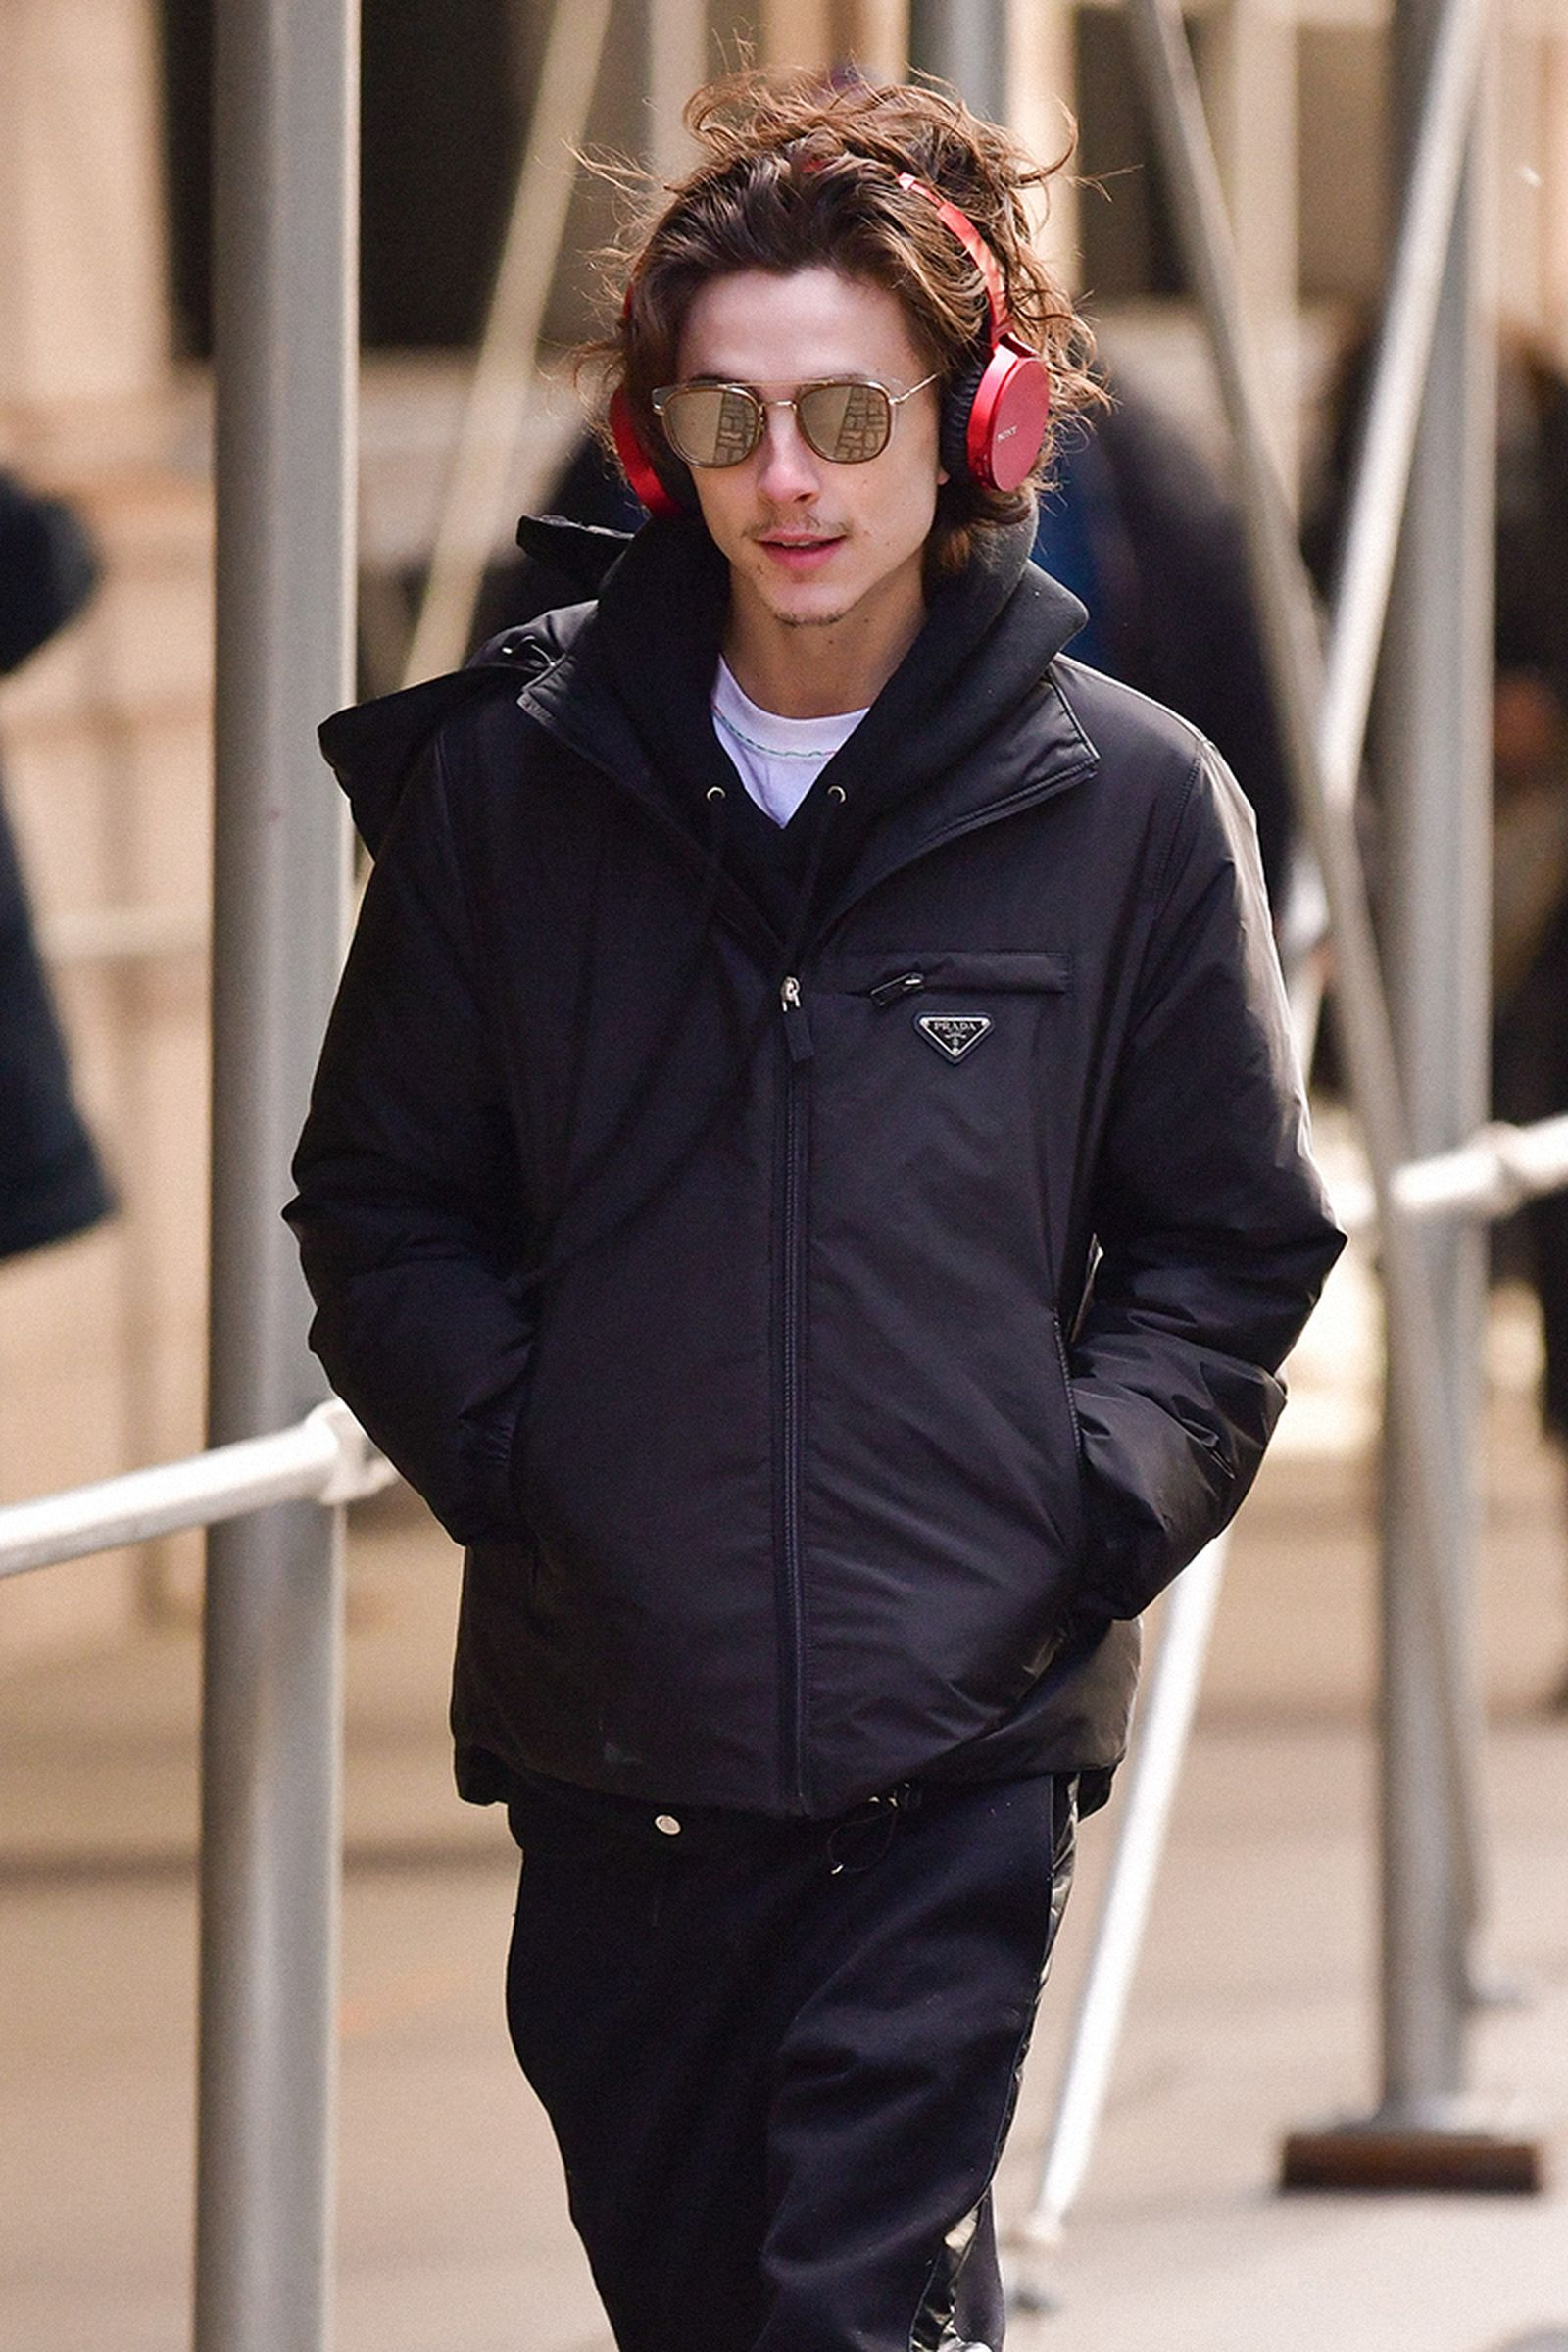 Timothee Chalamet seen on the streets of Manhattan on January 8, 2020 in New York City.